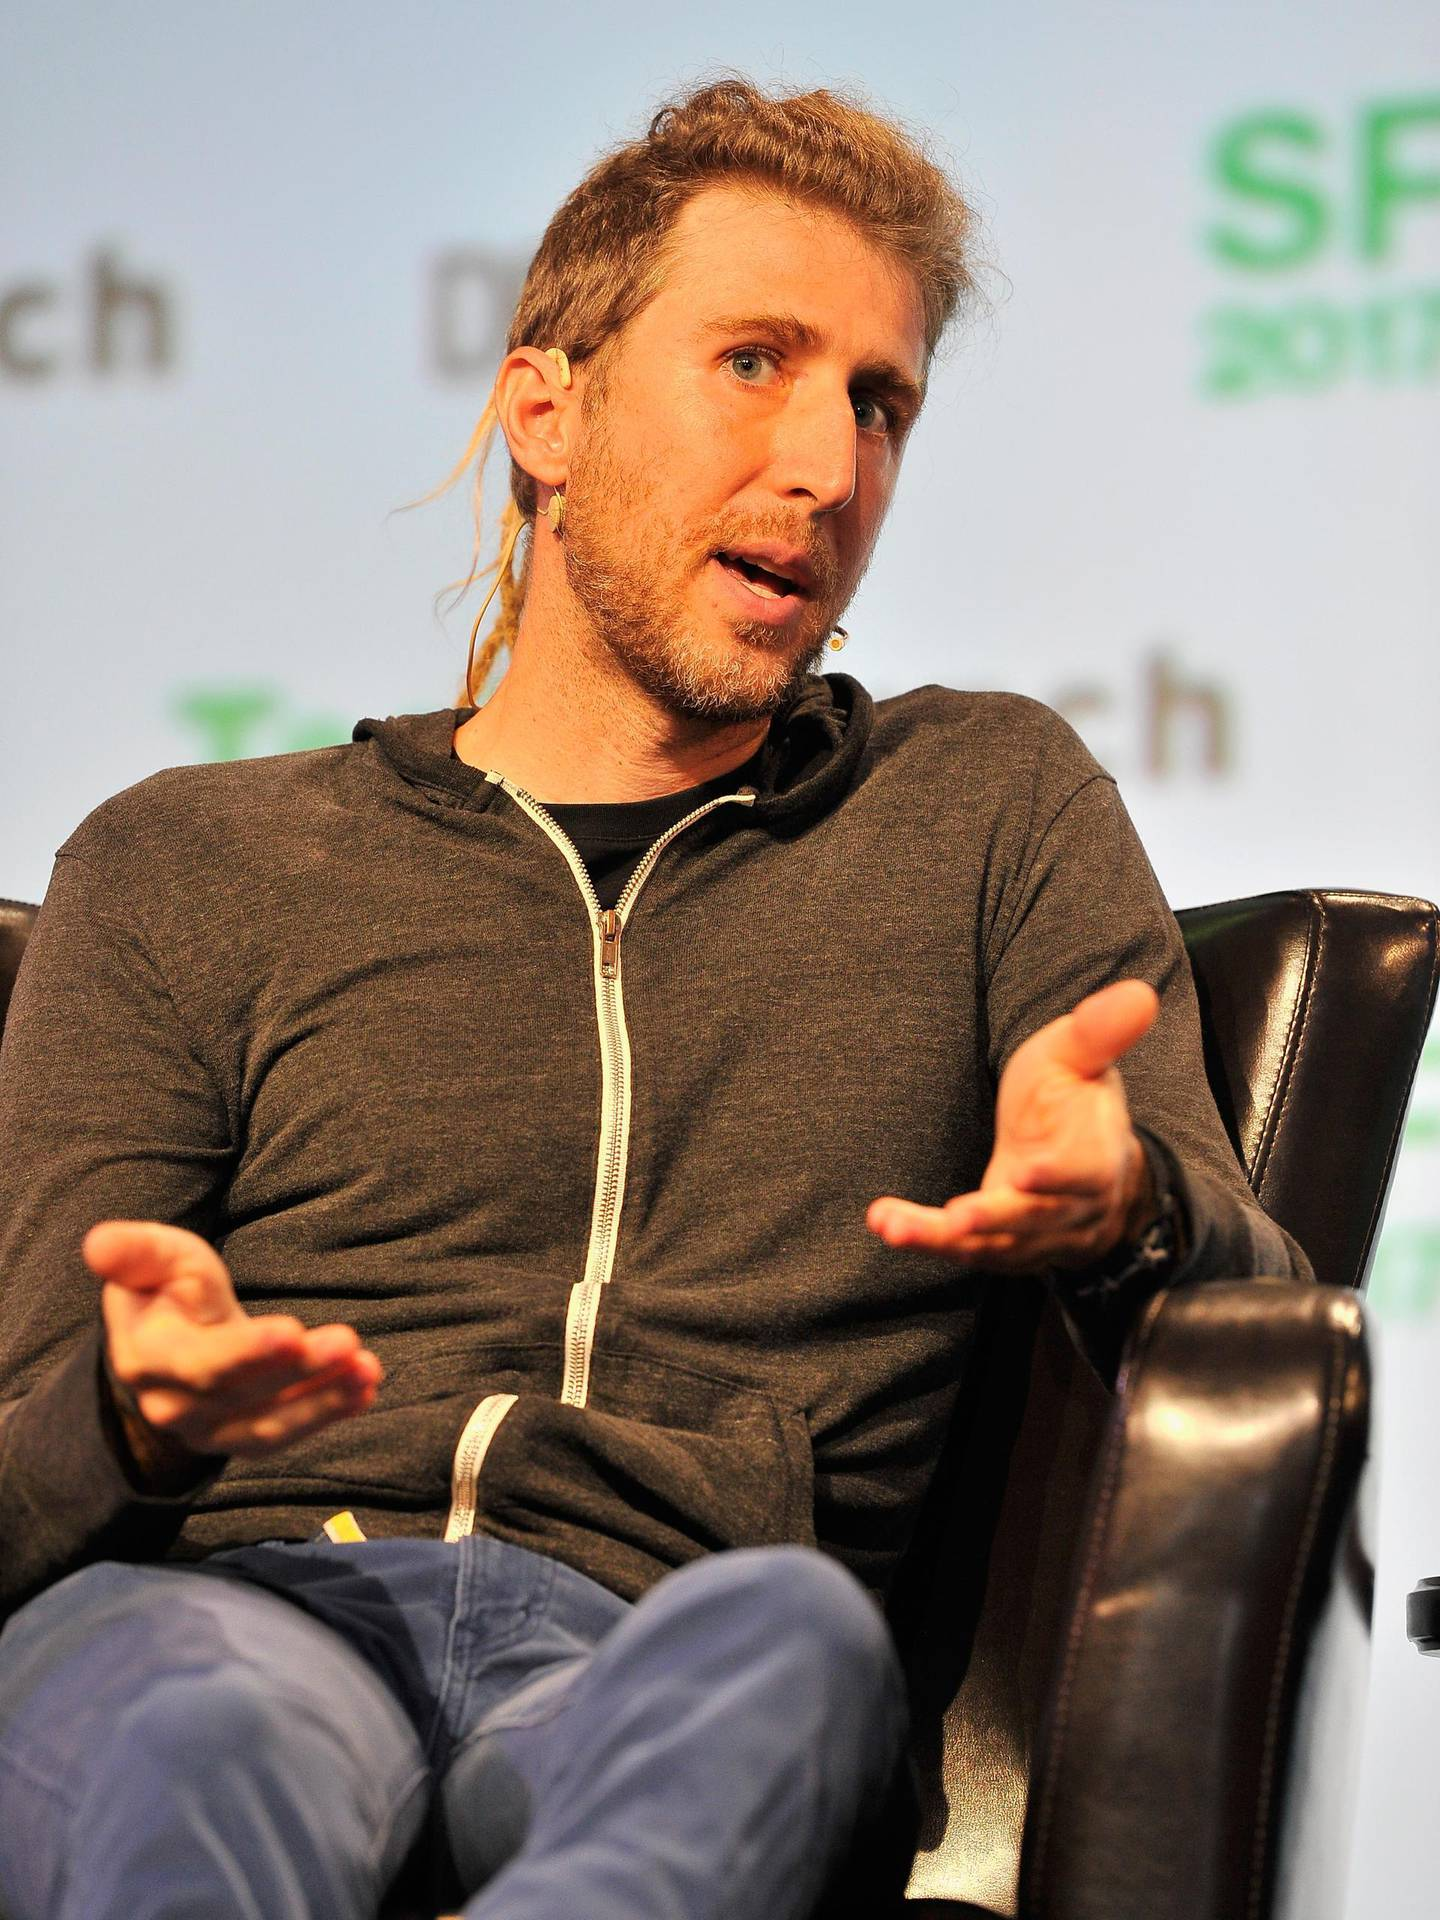 SAN FRANCISCO, CA - SEPTEMBER 18: Open Whisper Systems Founder Moxie Marlinspike speaks onstage during TechCrunch Disrupt SF 2017 at Pier 48 on September 18, 2017 in San Francisco, California.   Steve Jennings/Getty Images for TechCrunch/AFP